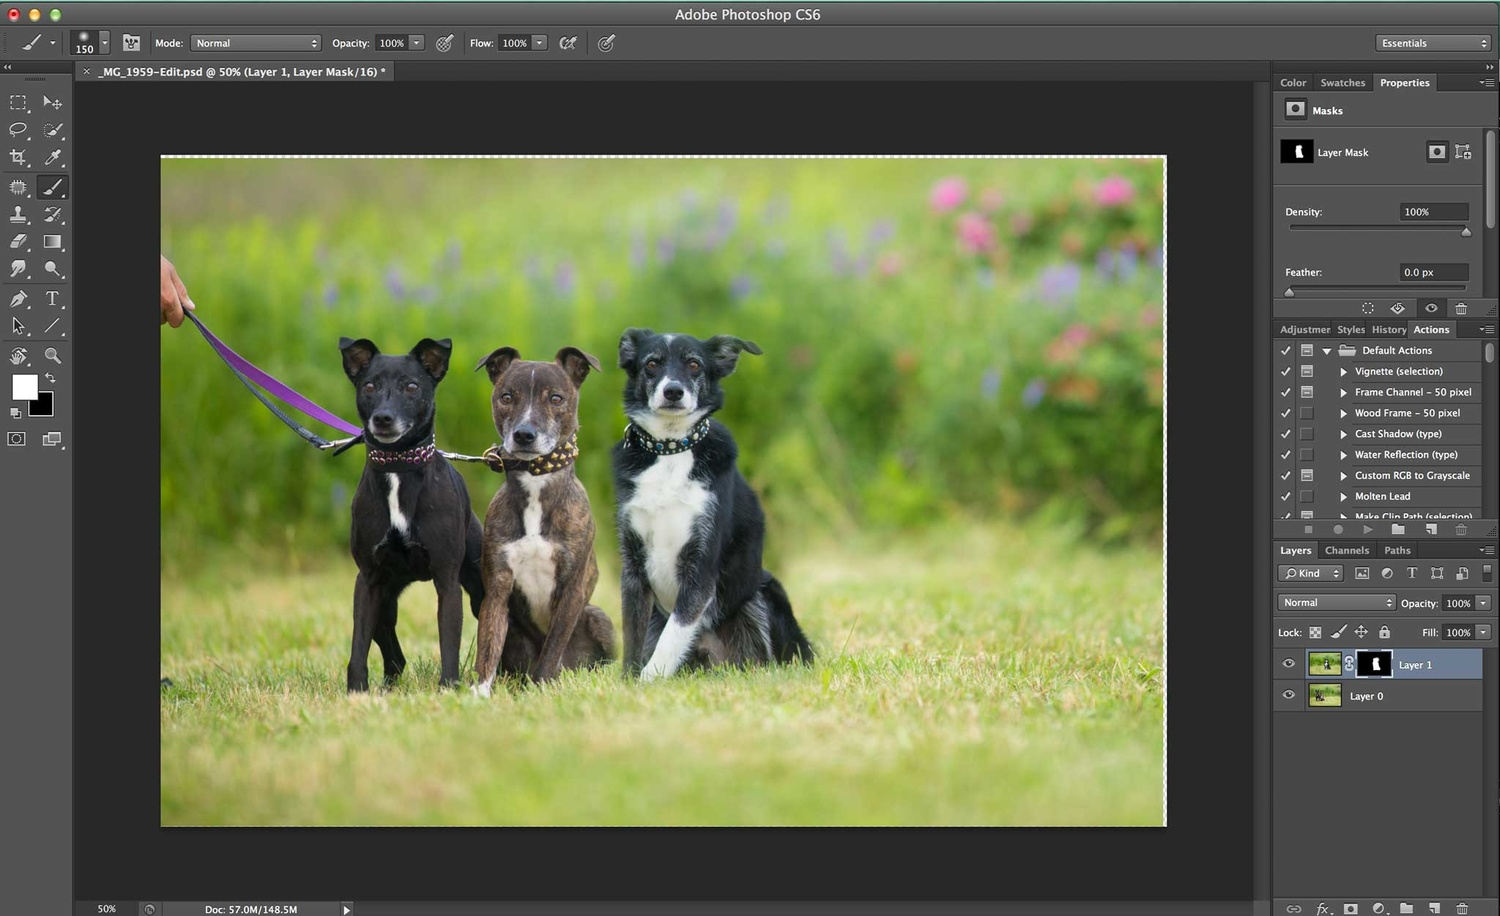 Compositing a dog group photo - Step 5